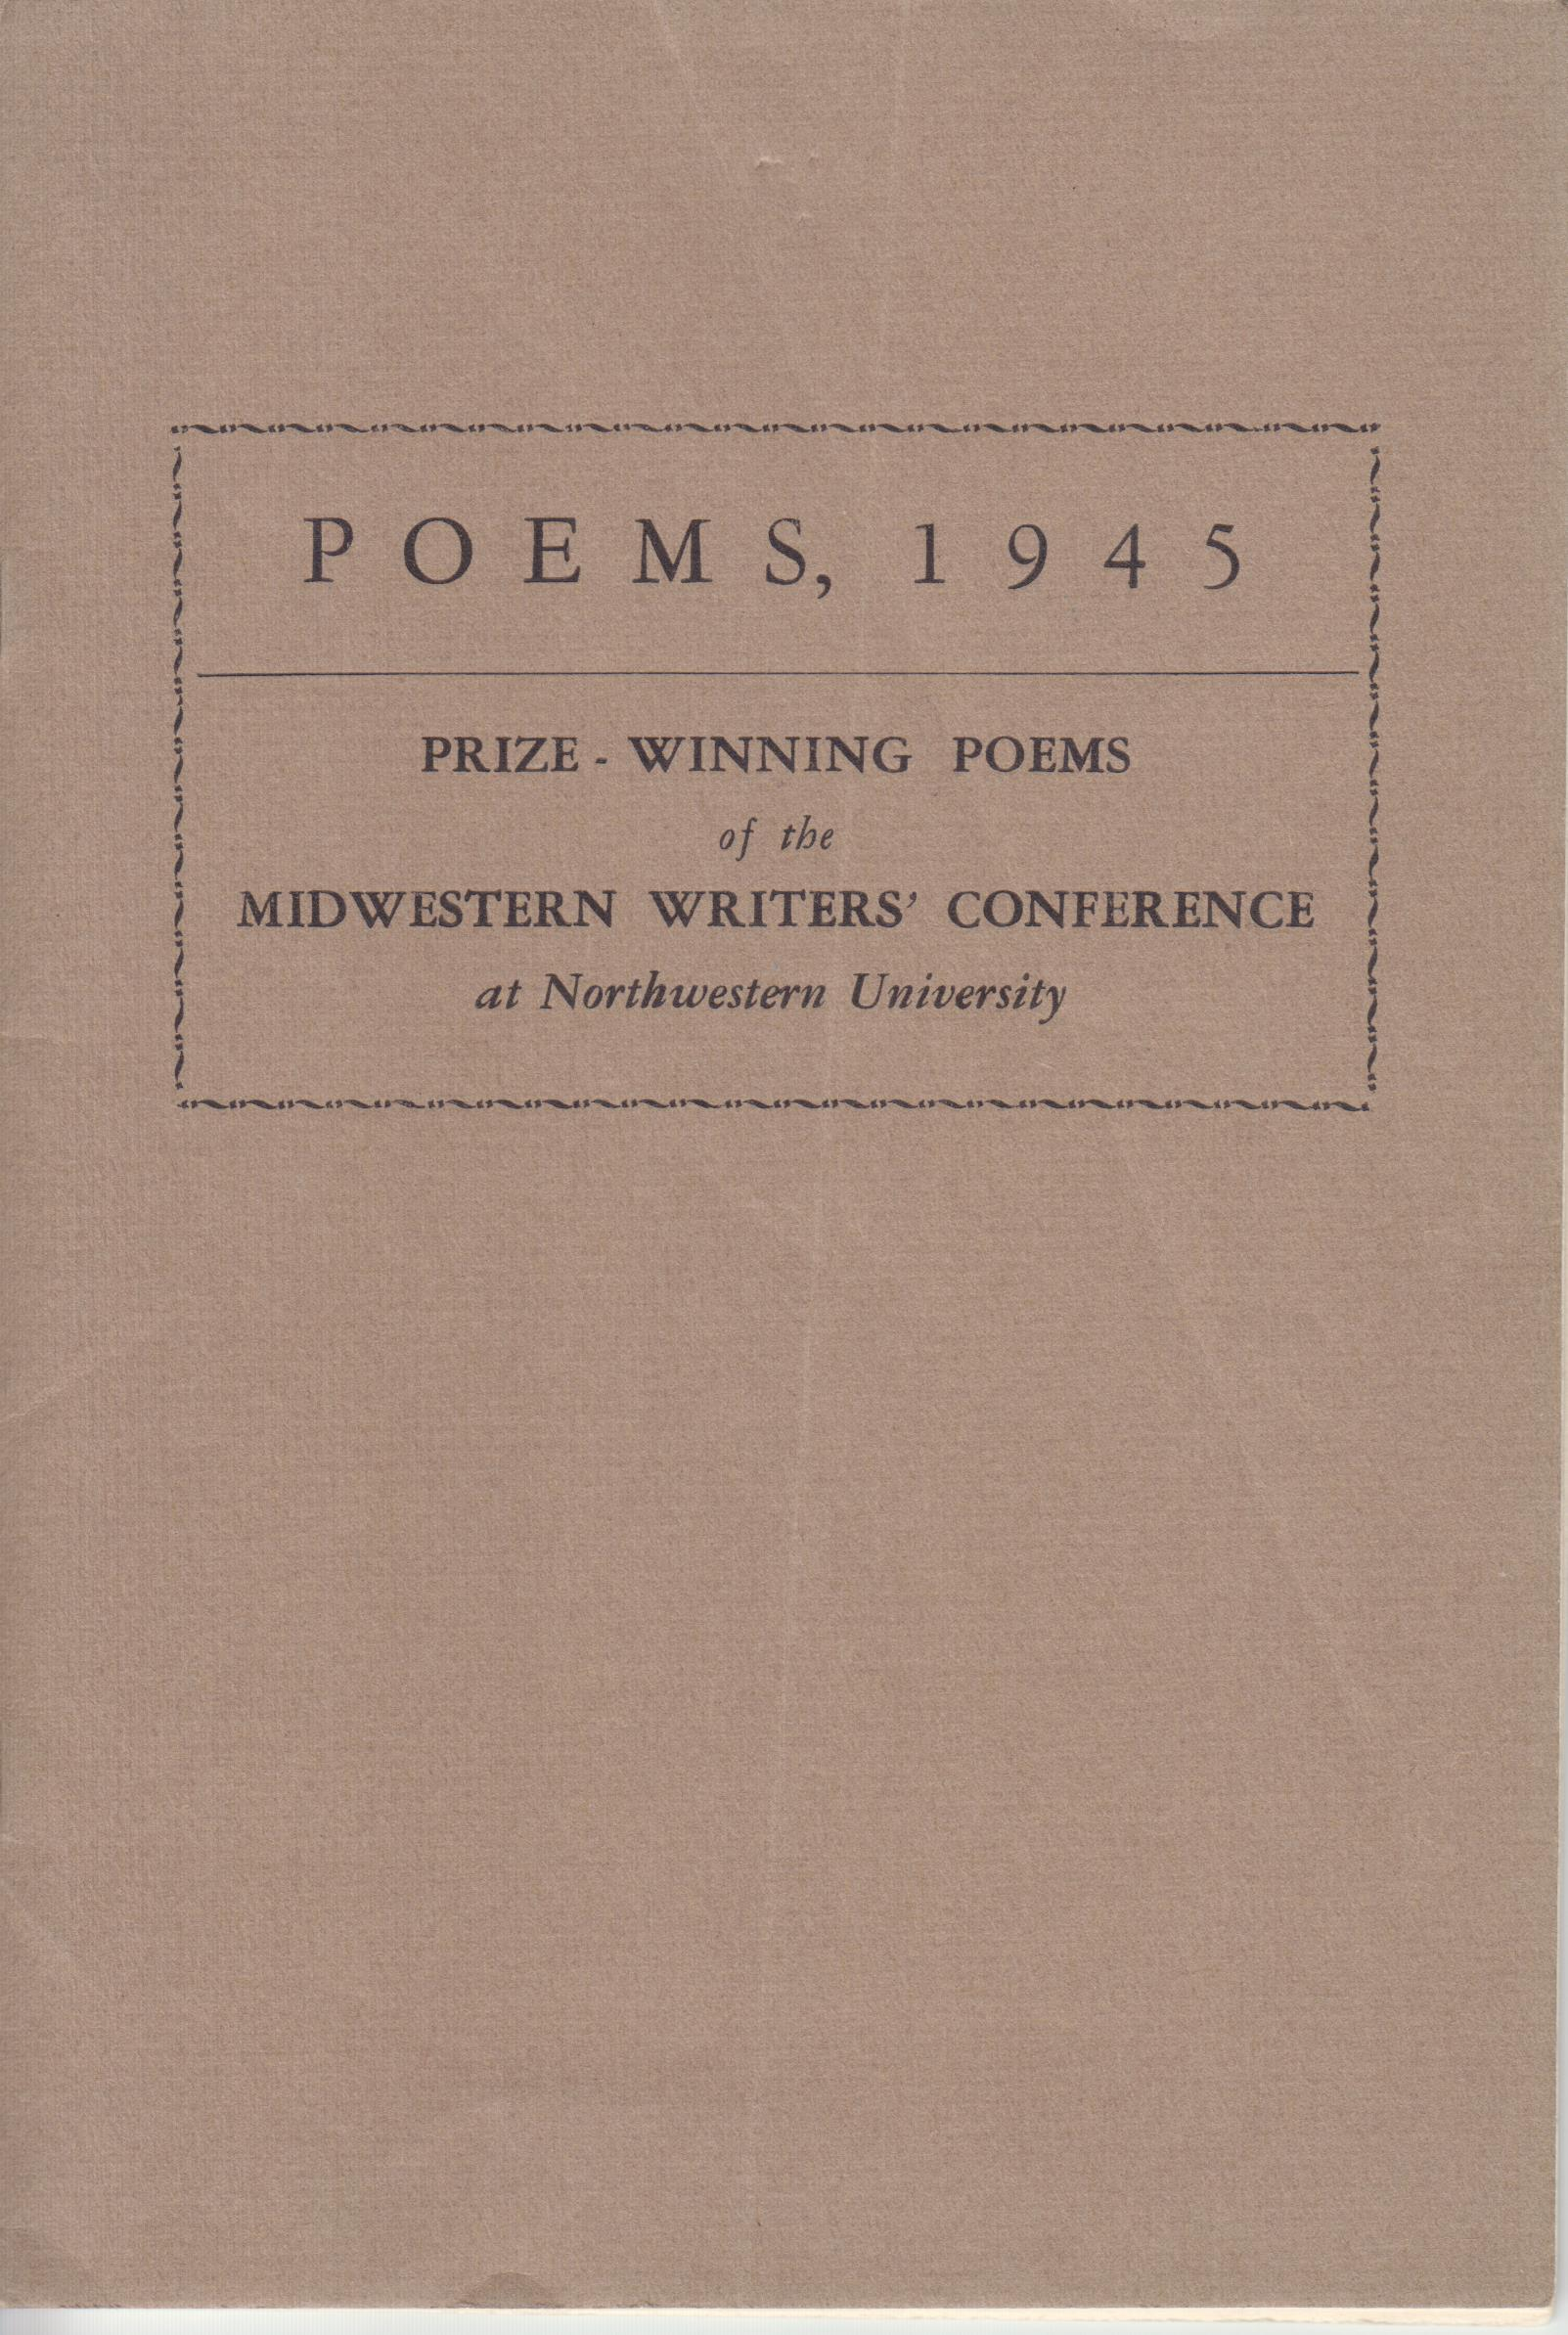 Image for People Protest in Sprawling Lightless Ways, in Poems, 1945. Prize-Winning Poems at the Midwestern Writers' Conference at Northwestern University